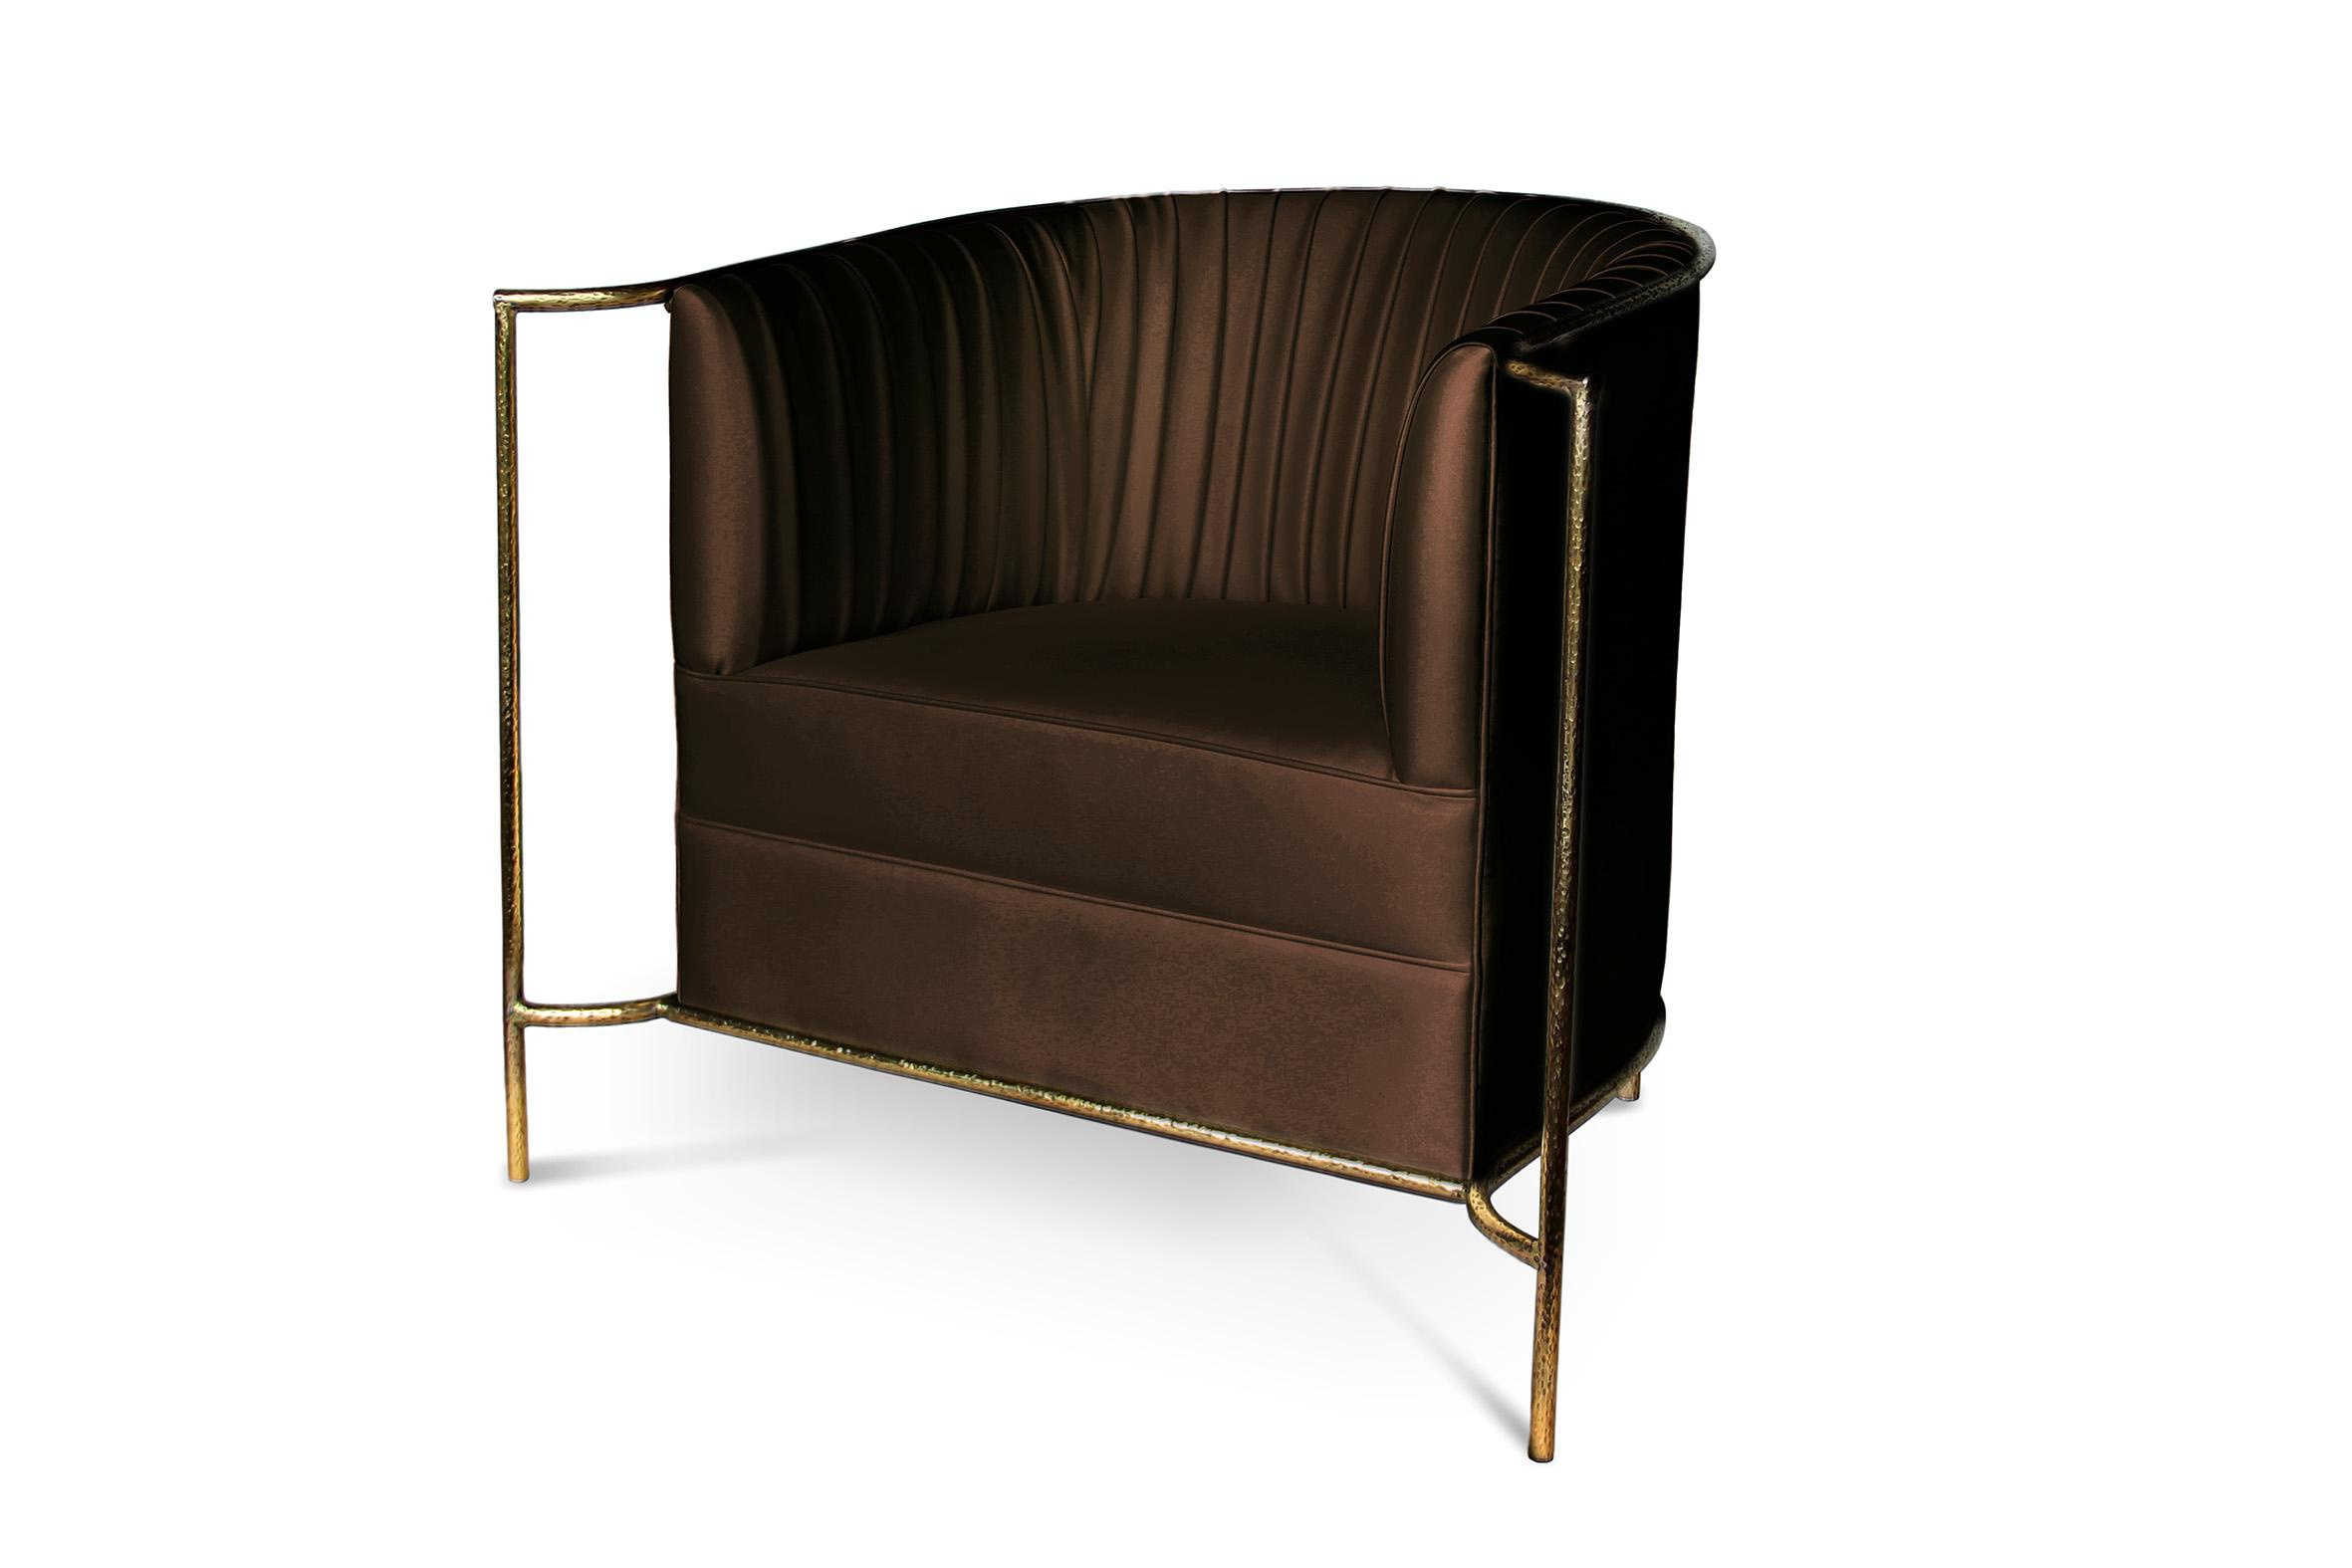 Chair With Gold Trim And Satin Upholstery Desire Koket